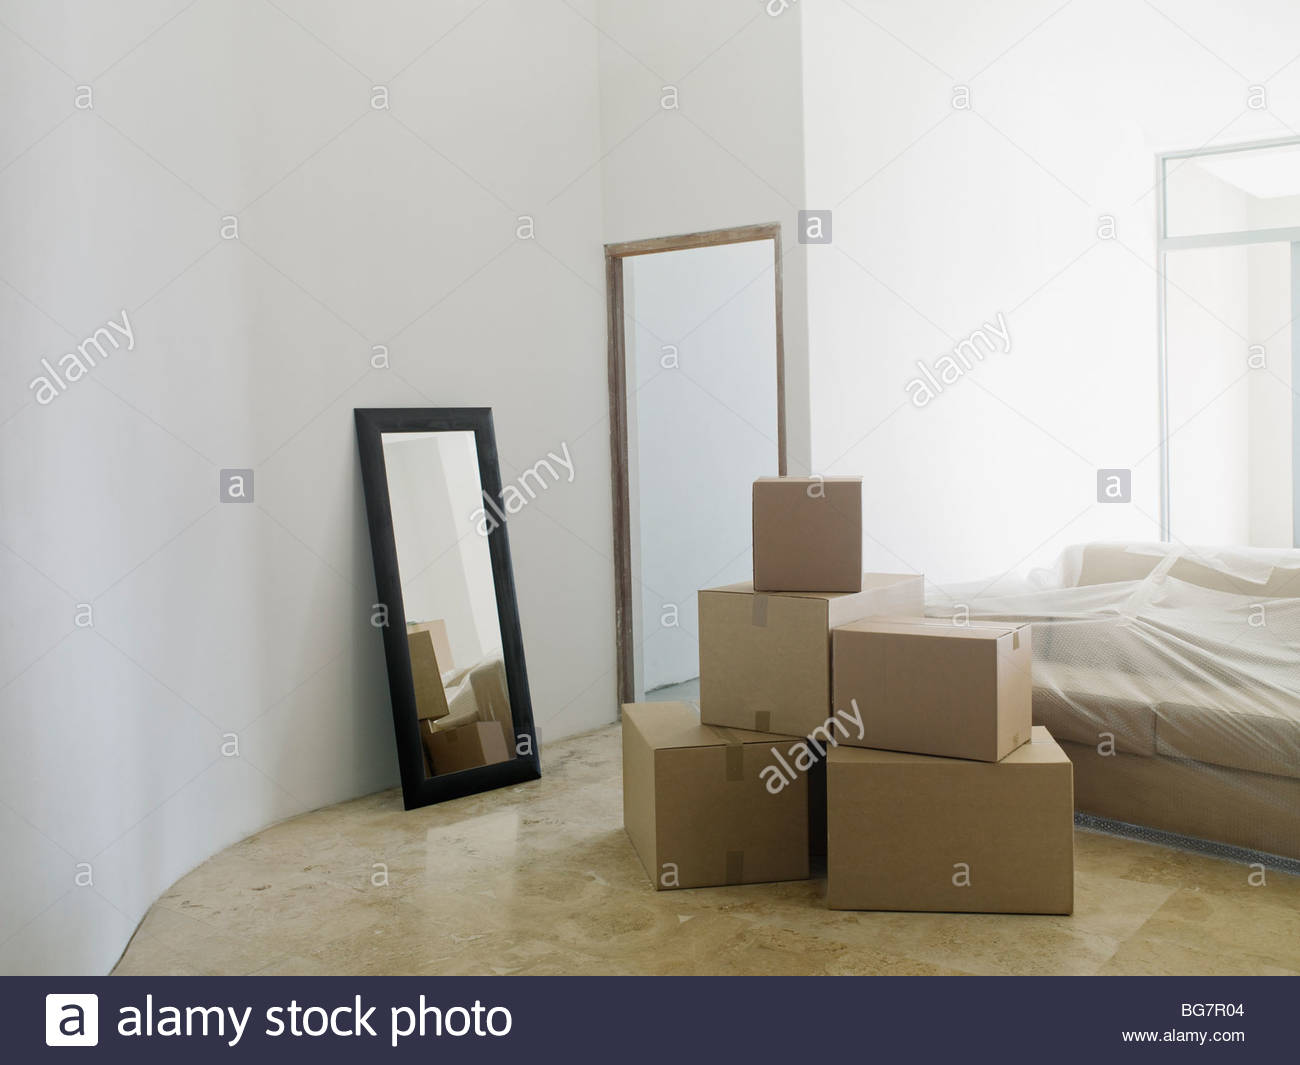 Cardboard boxes and mirror in new house - Stock Image